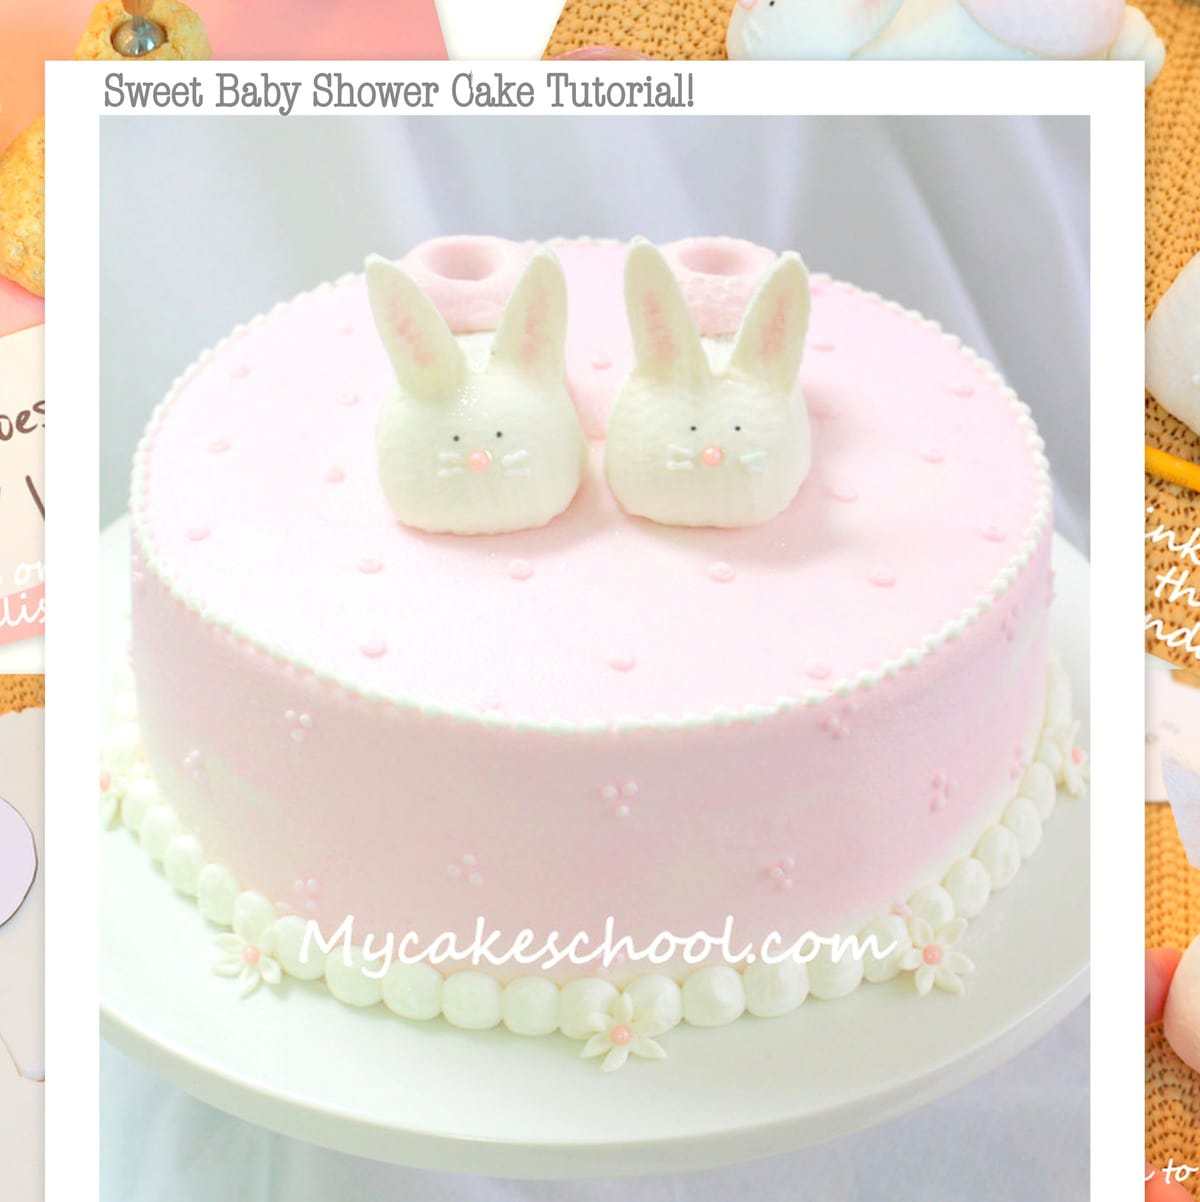 Free Bunny Booties Cake Topper Tutorial by MyCakeSchool.com! Online cake tutorials, cake recipes, videos, and more!